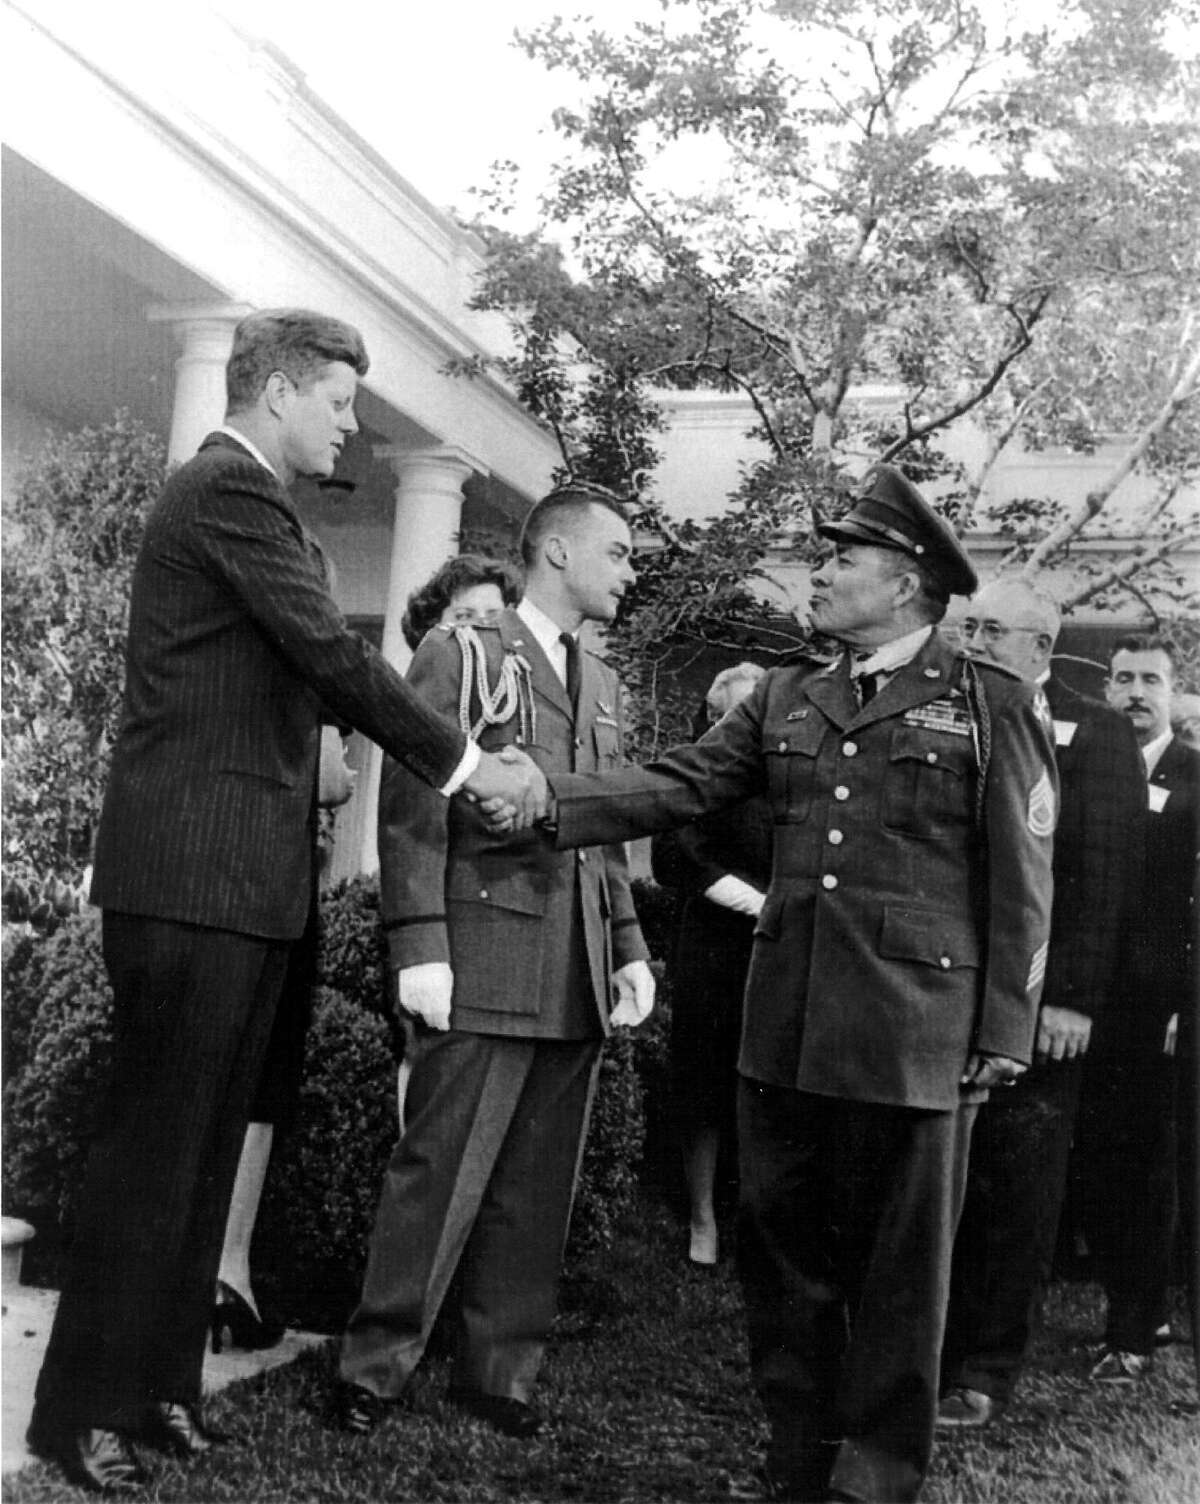 A reader pays tribute to Hispanic military members. Congressional Medal of Honor recipient Jose M. Lopez shakes hands with President John F. Kennedy in this undated photo.